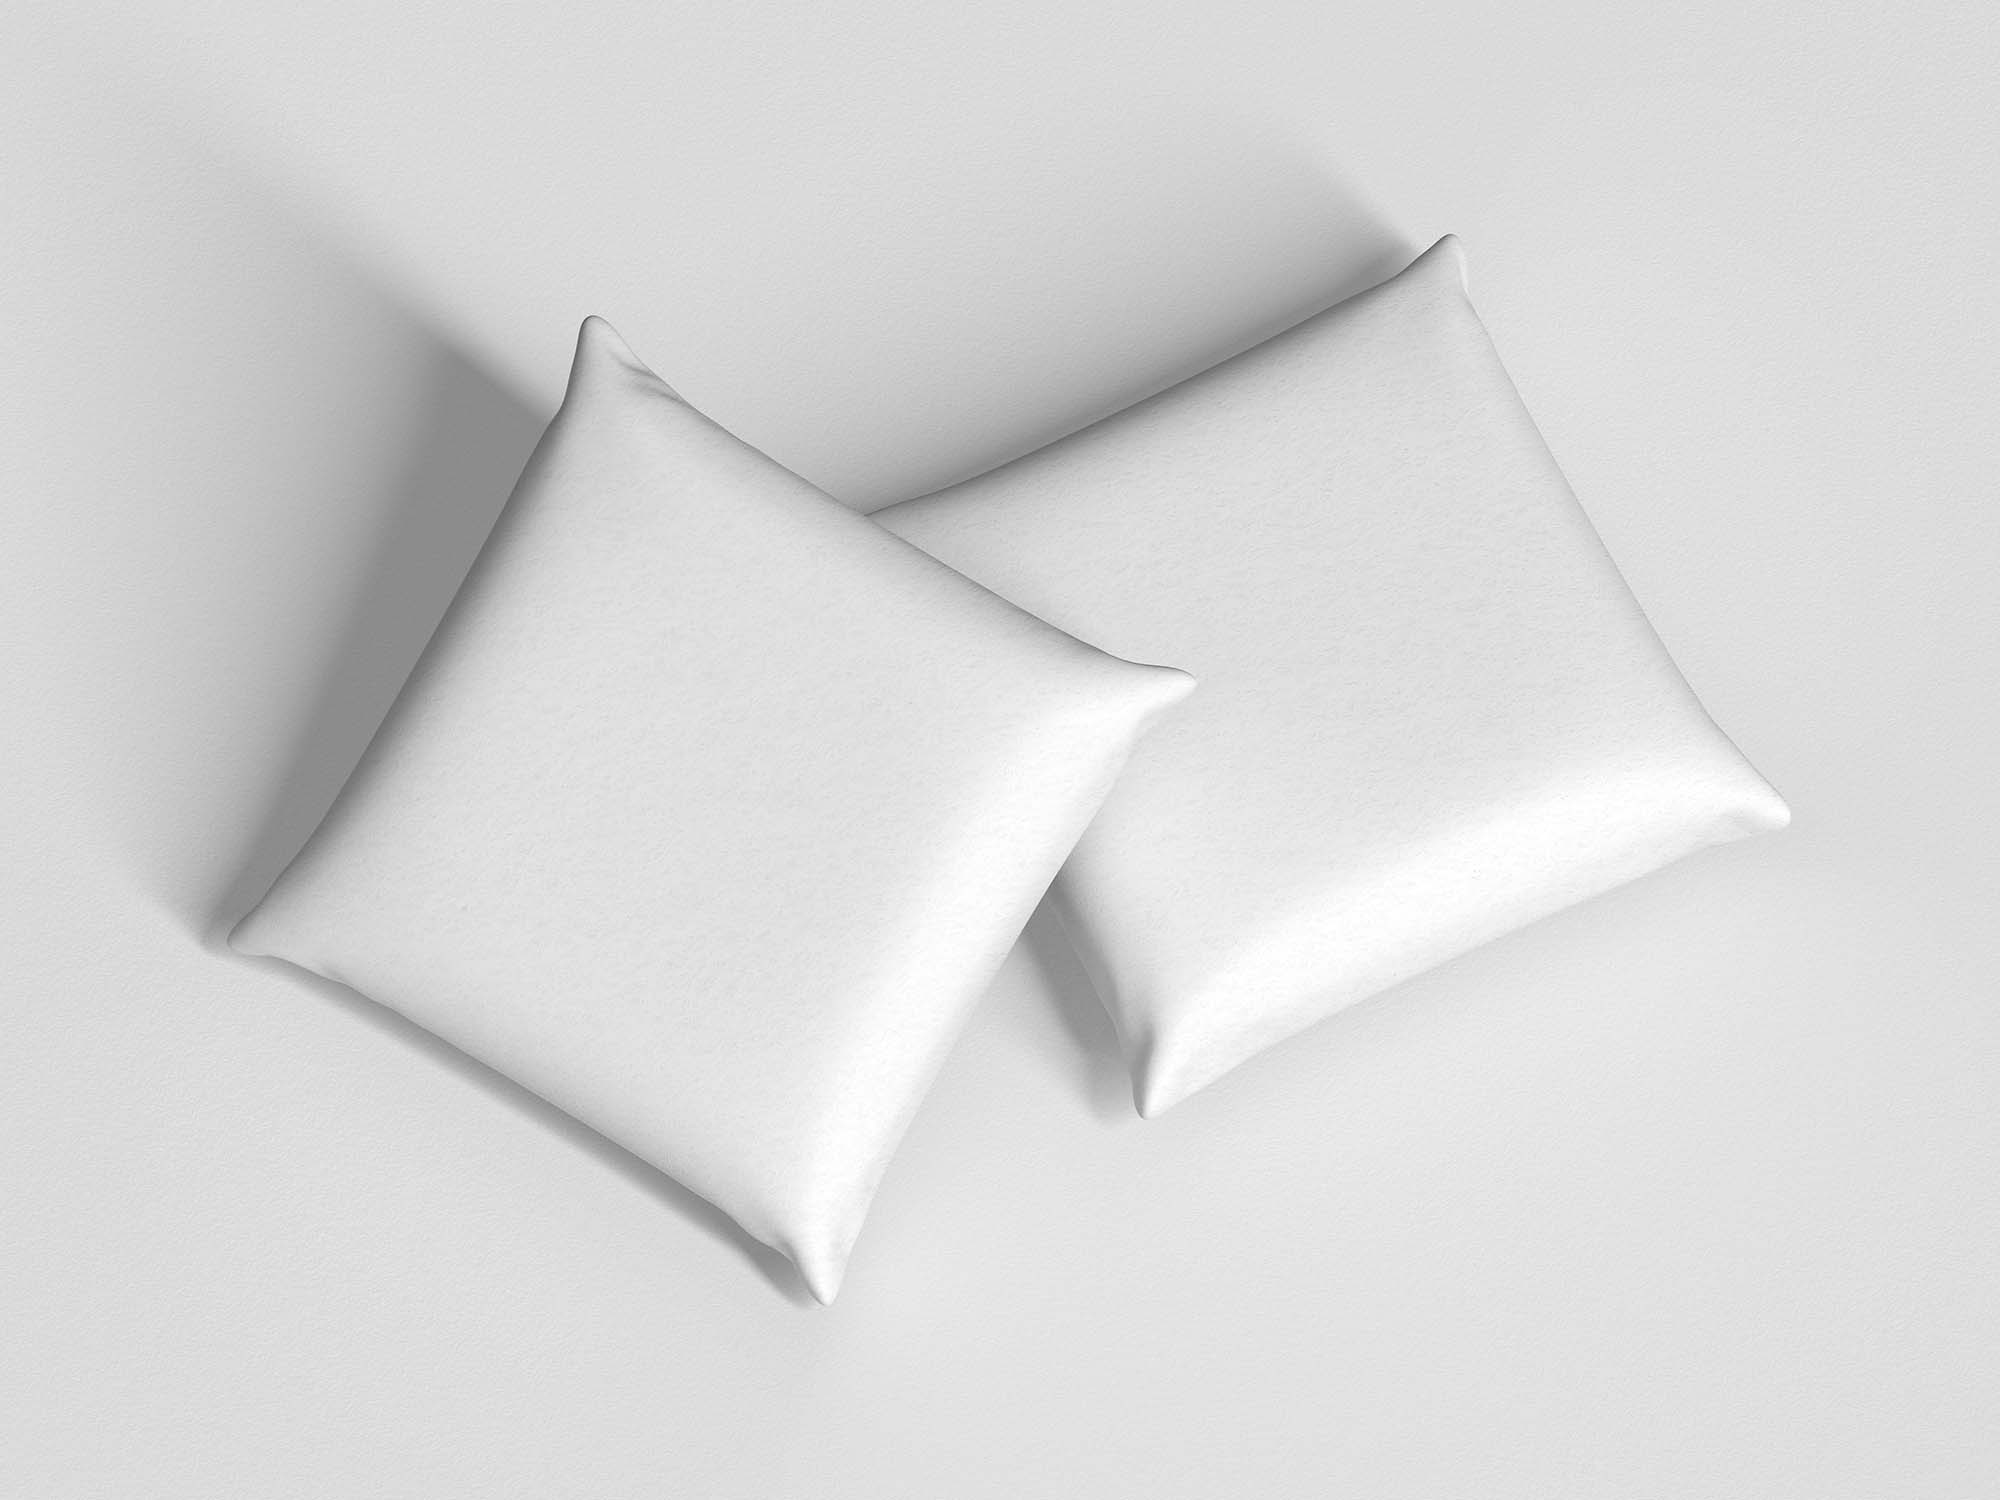 Branding Square Pillow Mockup 2